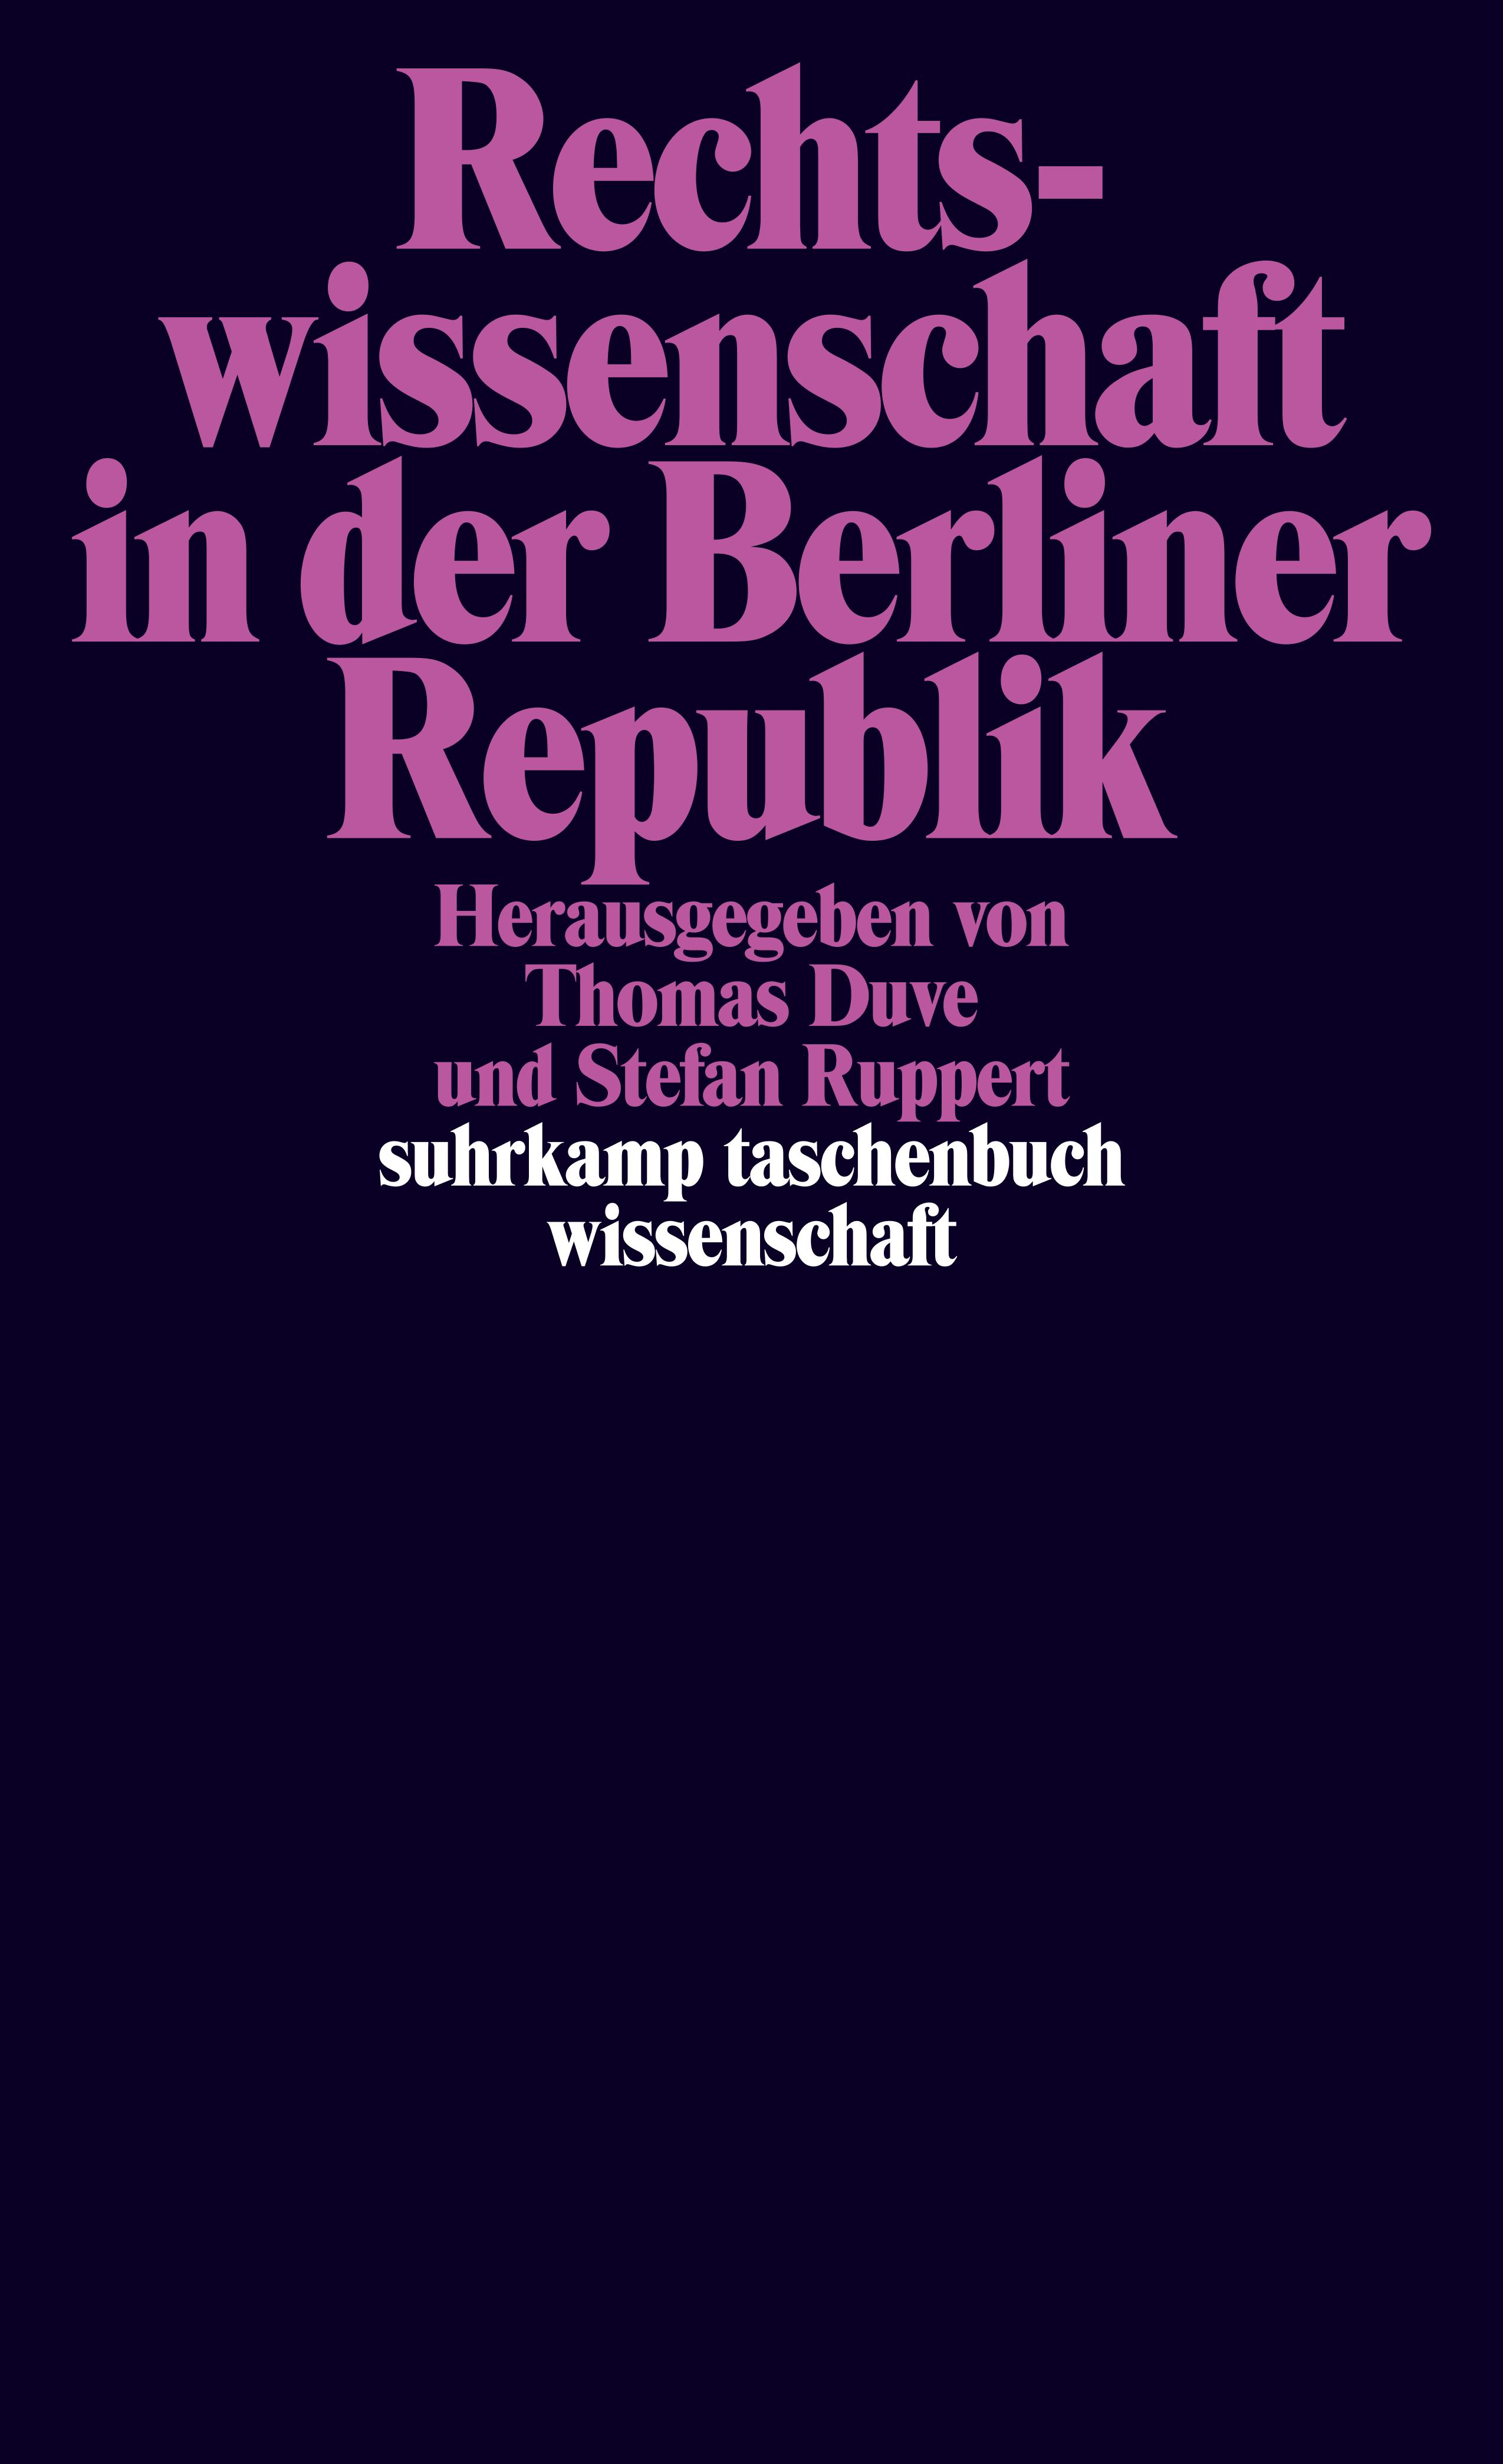 https://www.suhrkamp.de/cover/300dpi/29830.jpg